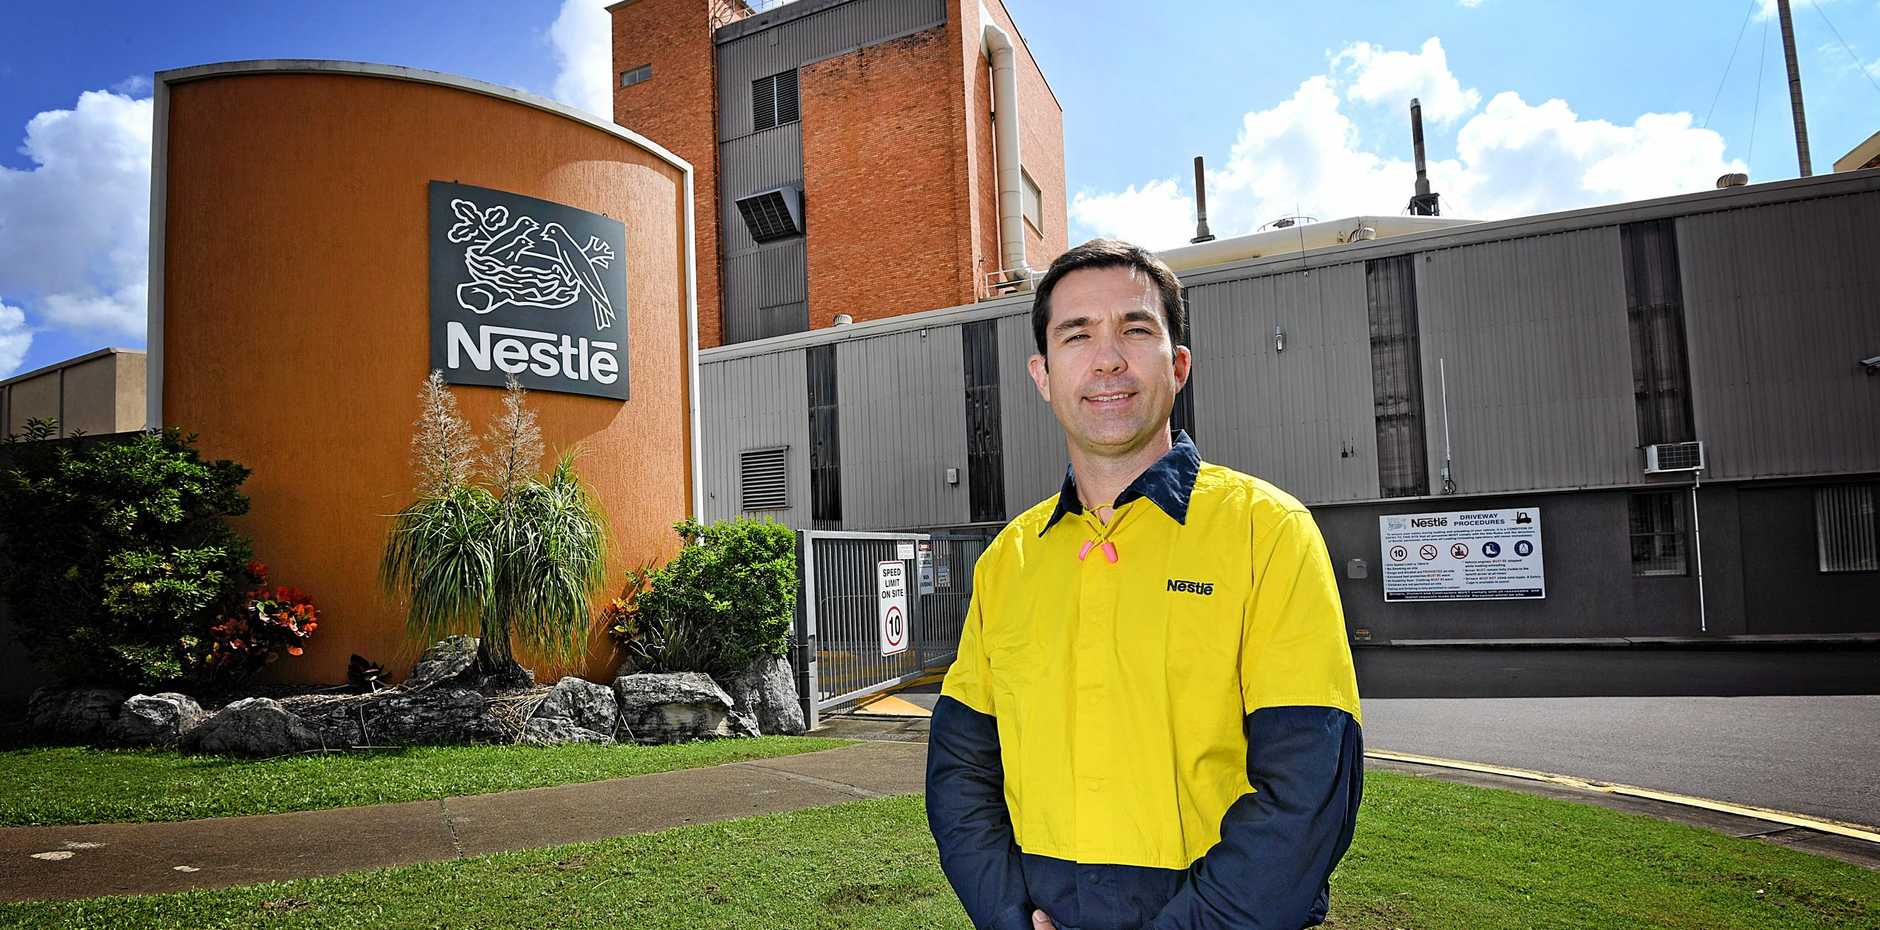 Nestle Gympie new 35 metre tower Richard Jones Factory Manager.